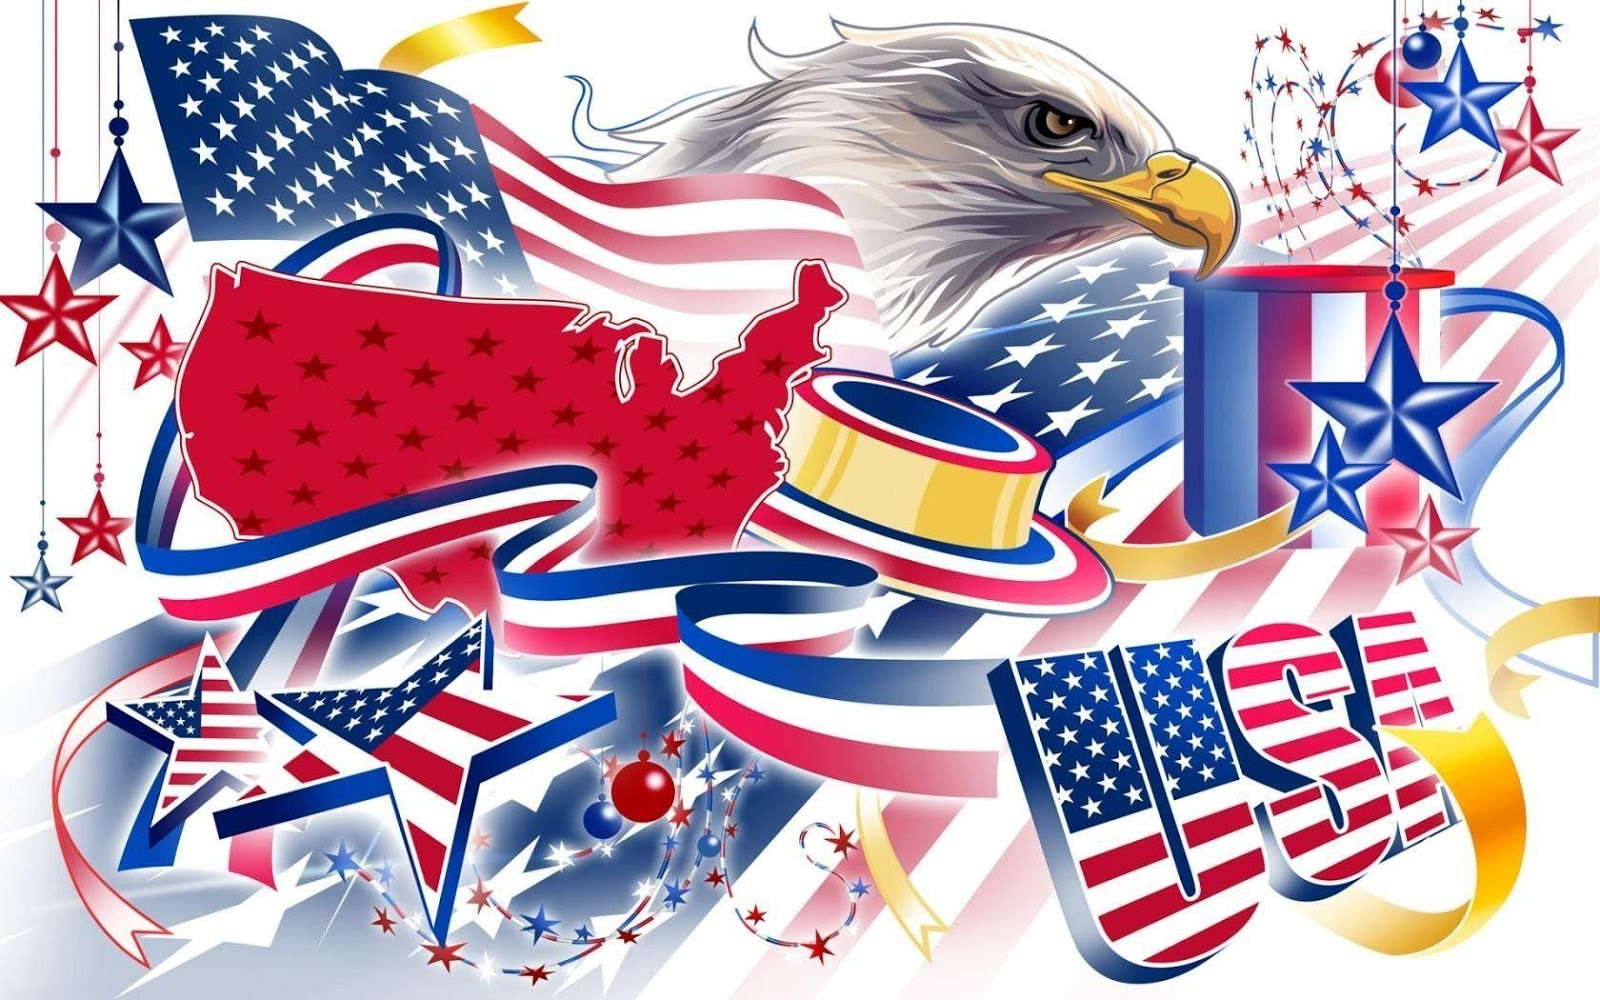 Wallpapers 4th Of July HD  Wallpapers